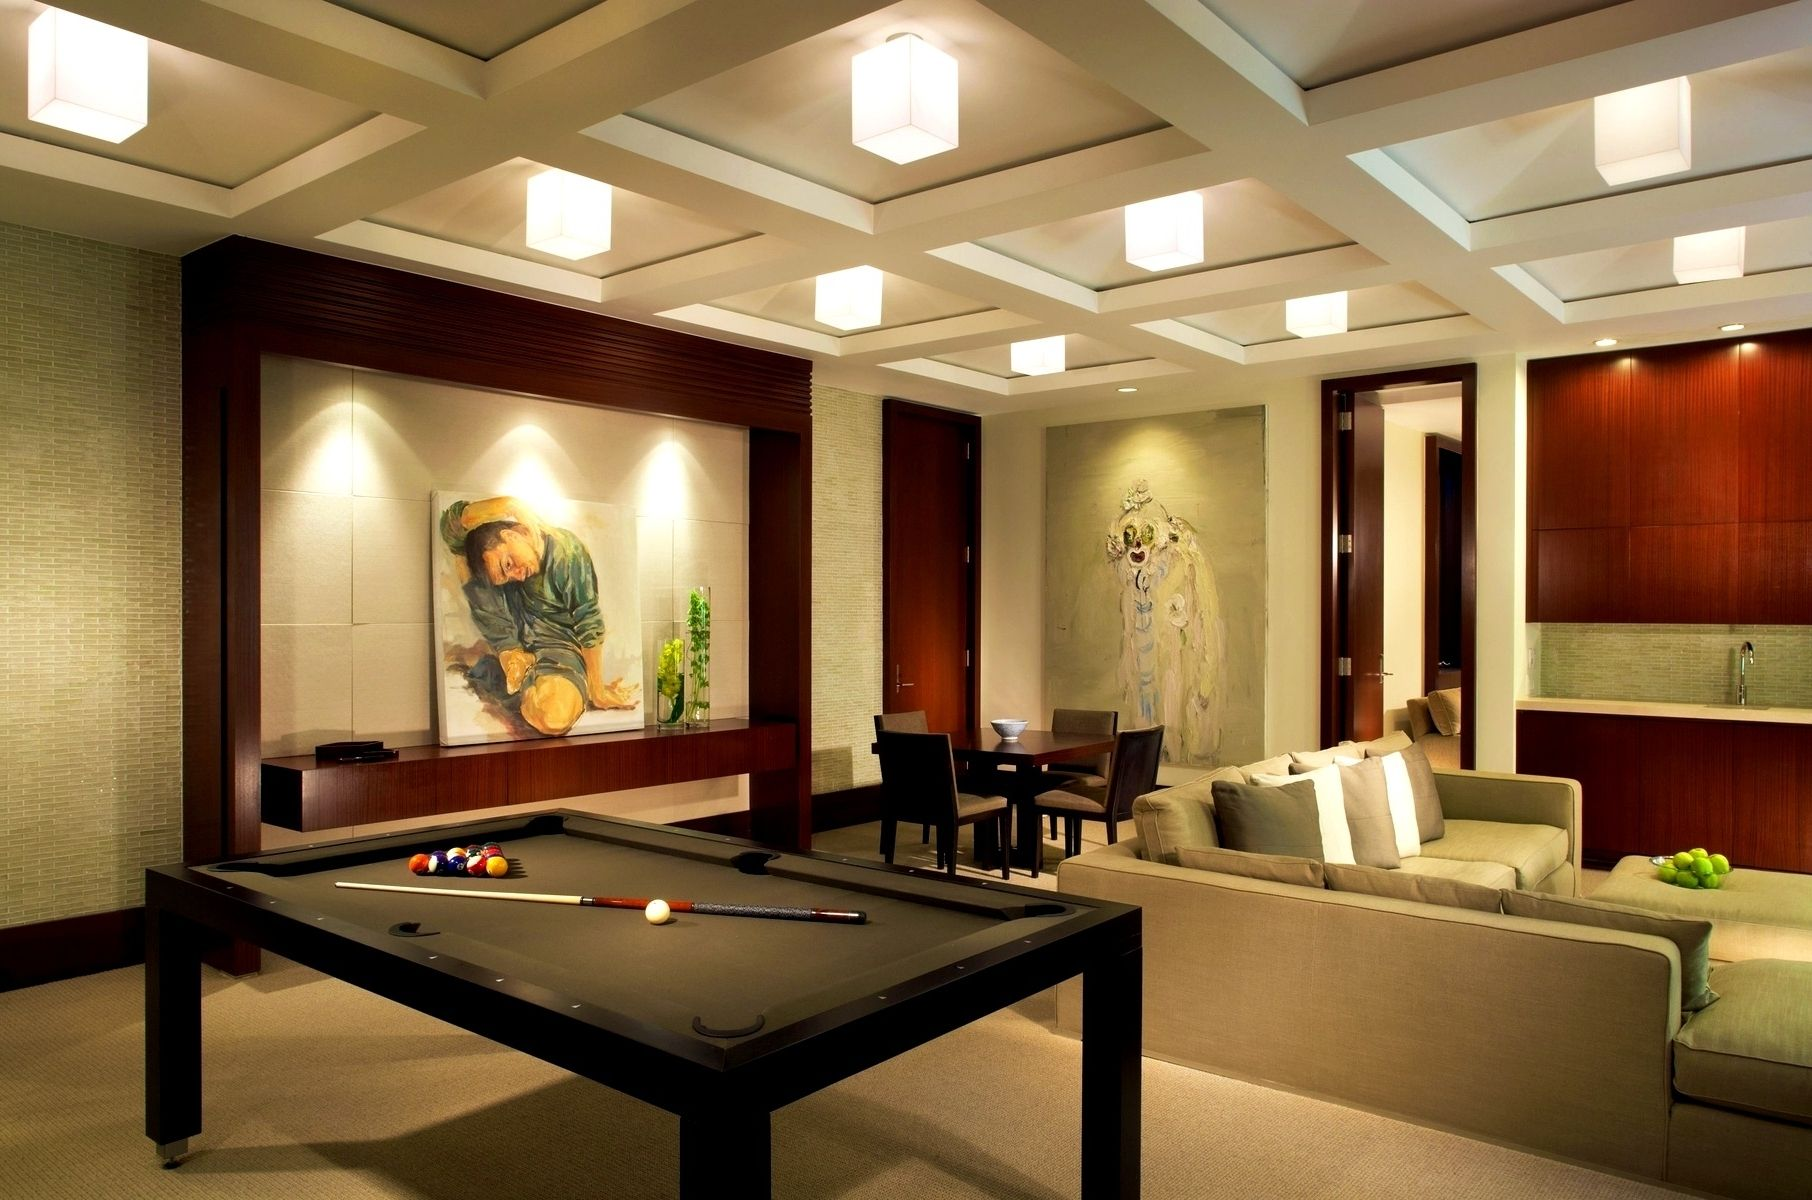 Bring the family together with rec room games · table tennis · table hockey · dart games · foosball · indoor basketball · billiards · other rec room products. Pin on Recreation Room Ideas